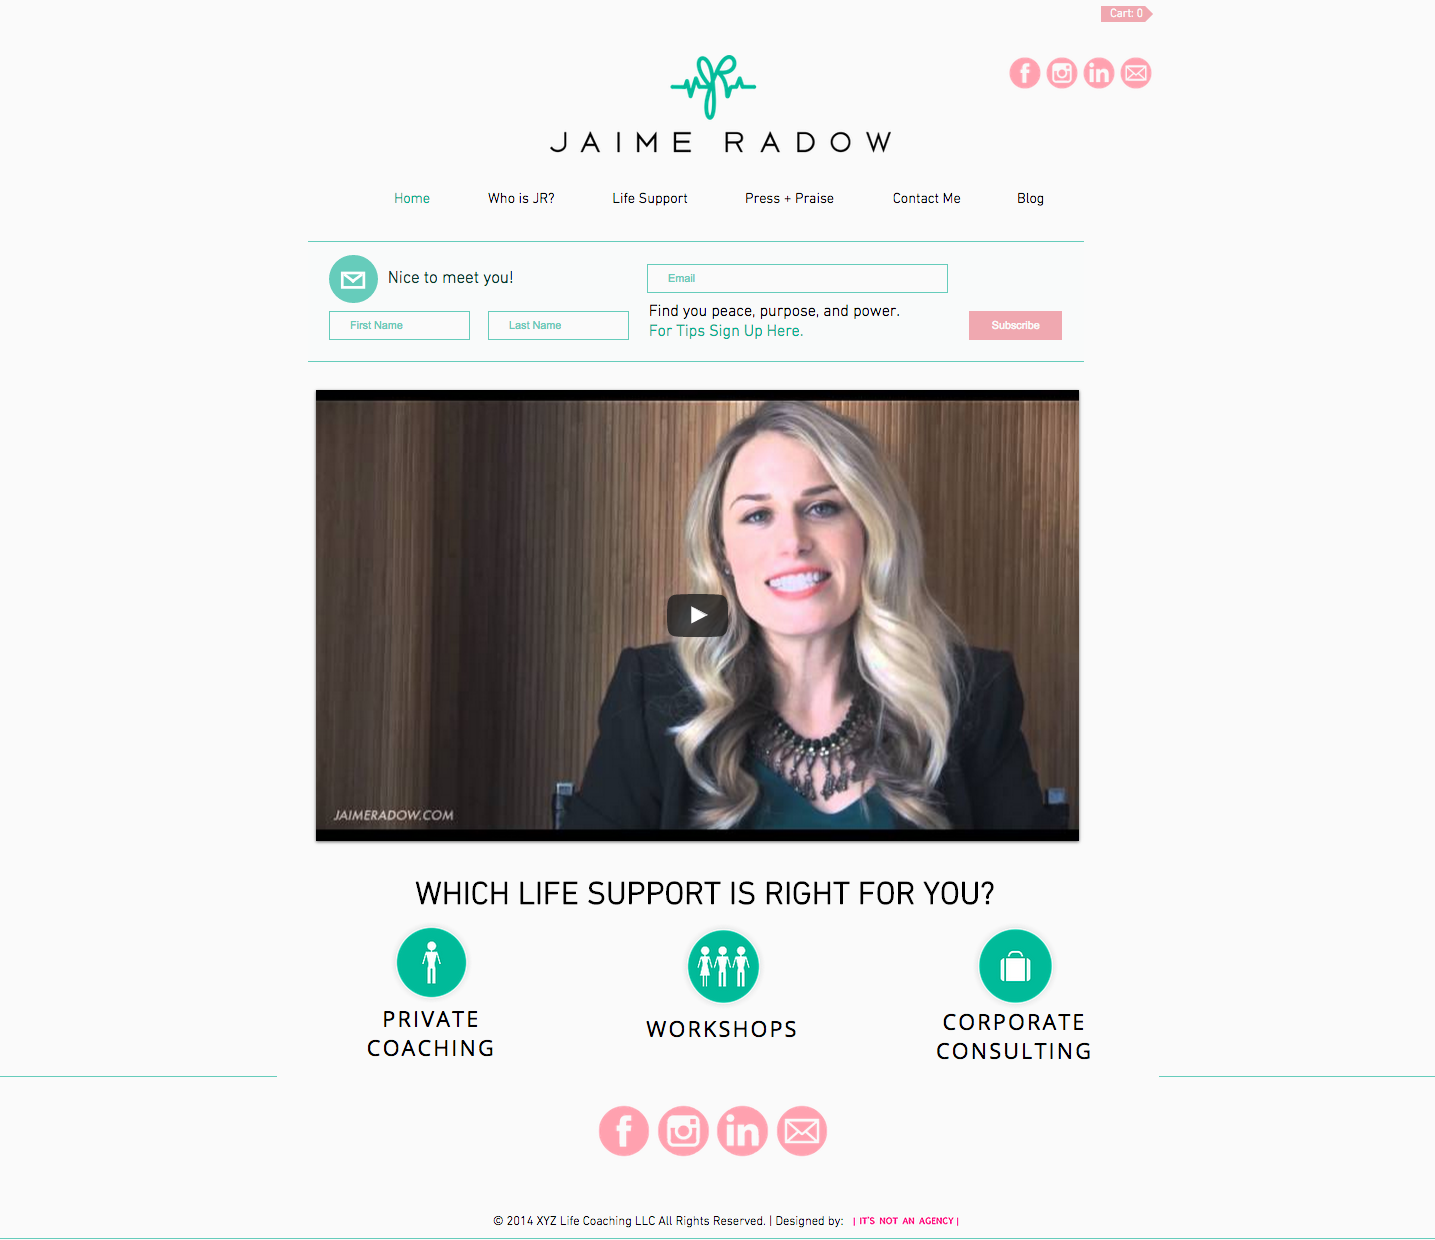 screencapture-www-jaimeradow-com-1442354823097.png